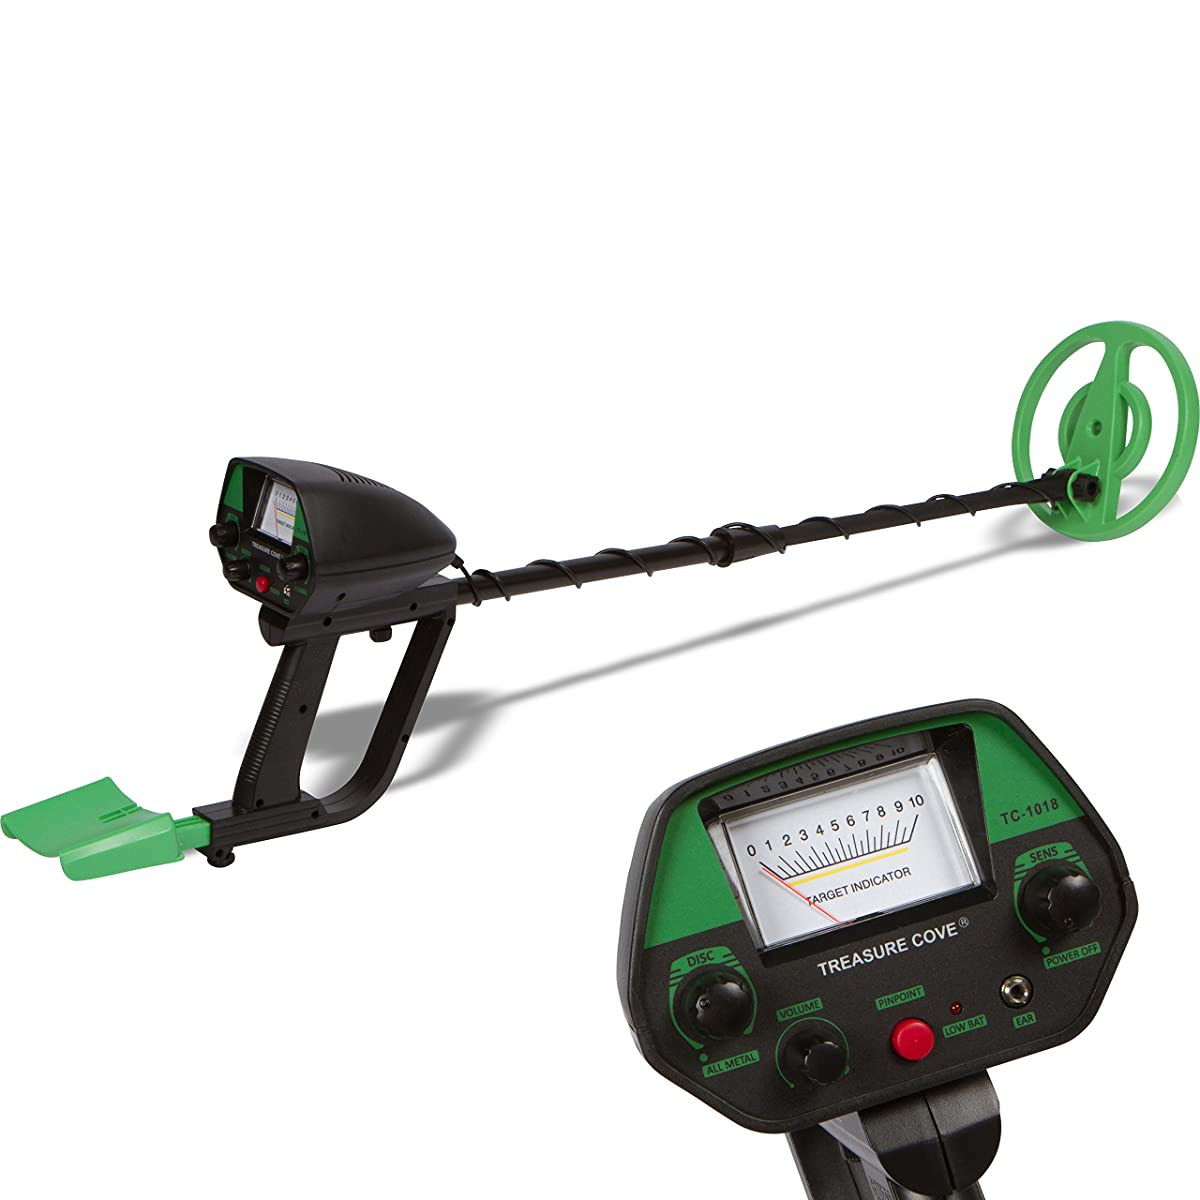 Treasure Cove Metal Detector Waterproof Metal Detectors Starter Kit with Pinpointer & Discrimination Mode & 10-year Warranty - Model TC-1018